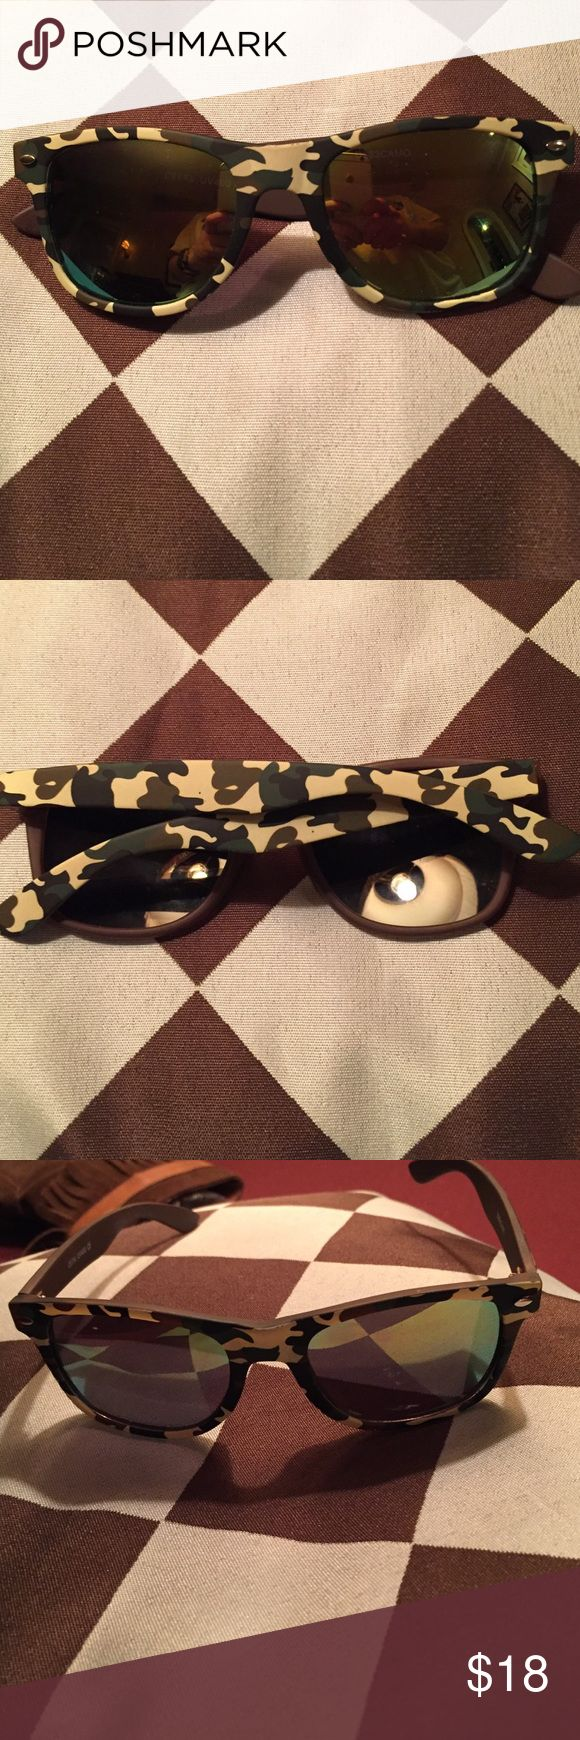 Fun Camo Sunglasses w Soft Material. Worn once. Fun. Life if the Party Shades. Camo. No signs of wear. 😎 Accessories Sunglasses